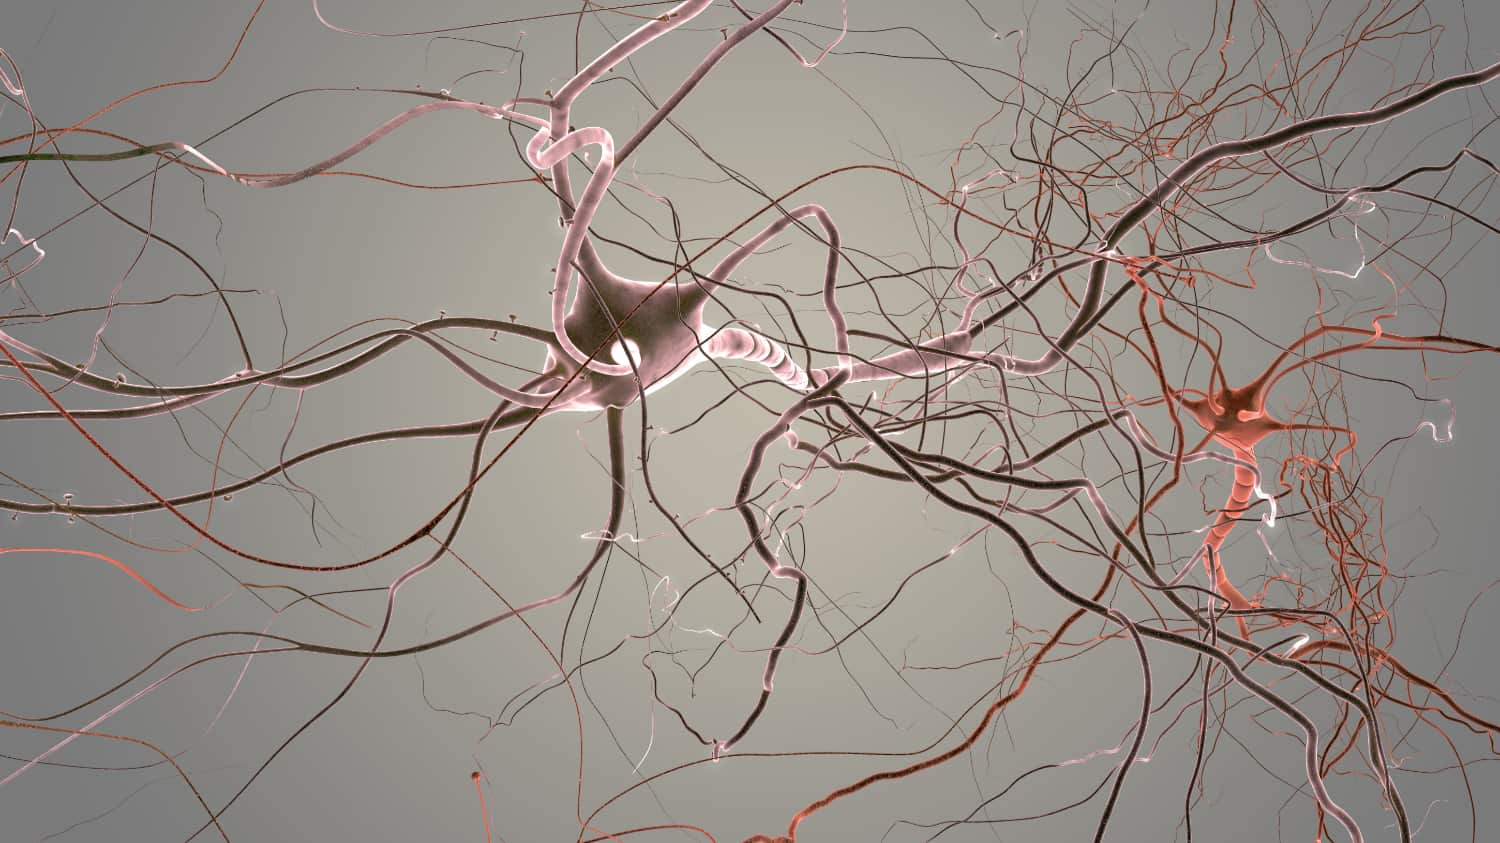 What is trapped nerve?